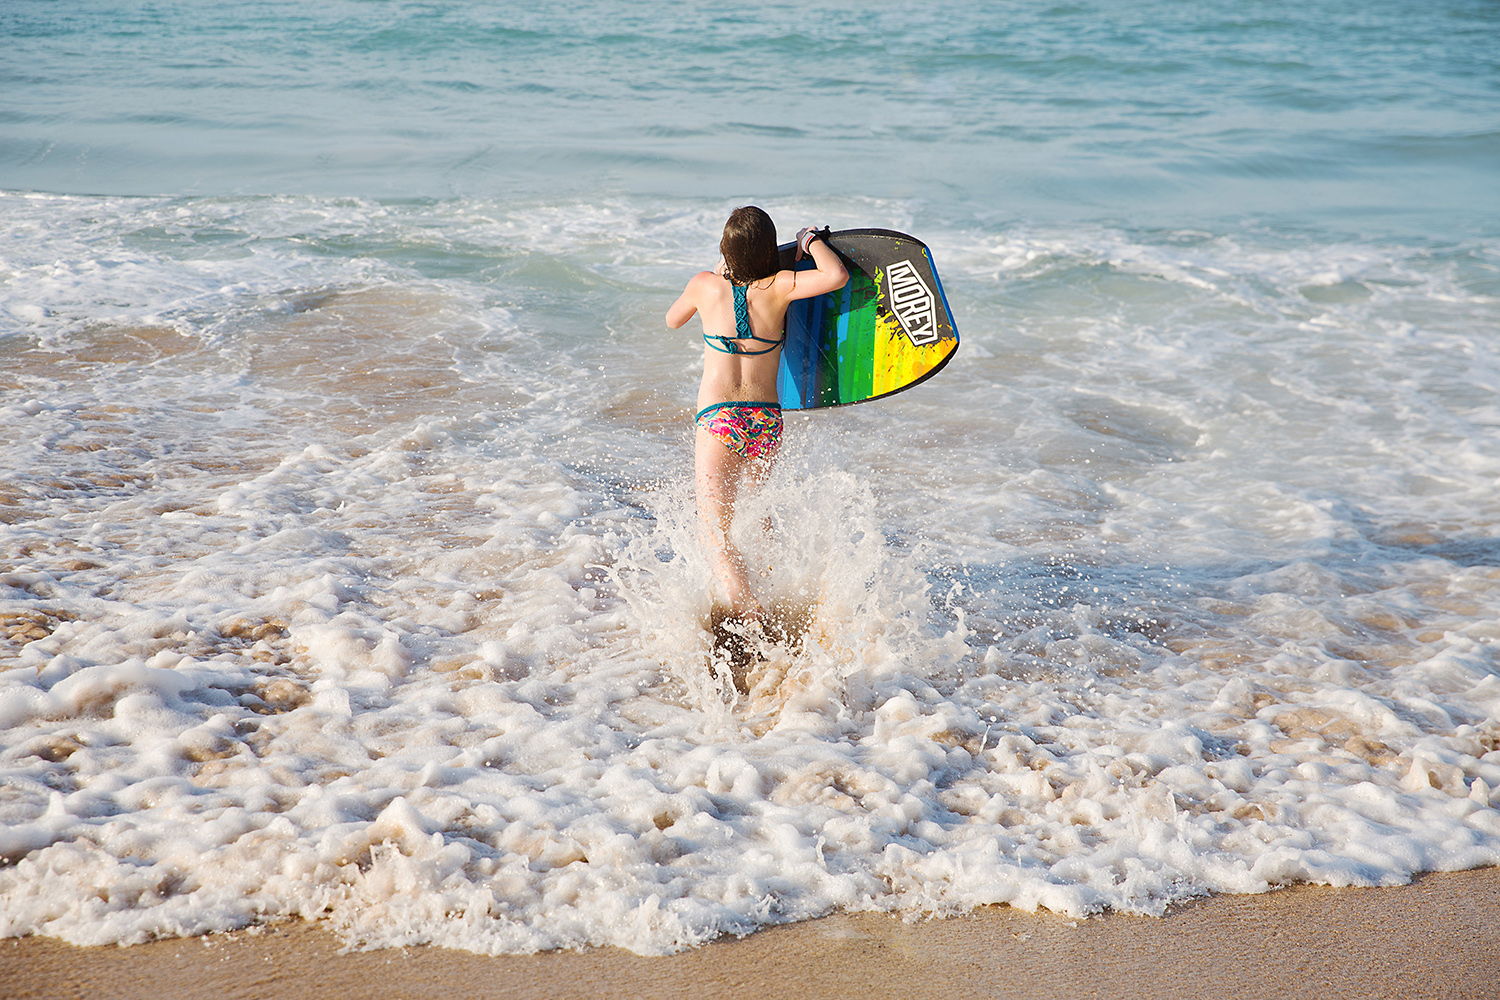 hitting the surf with a boogie board in Hawaii